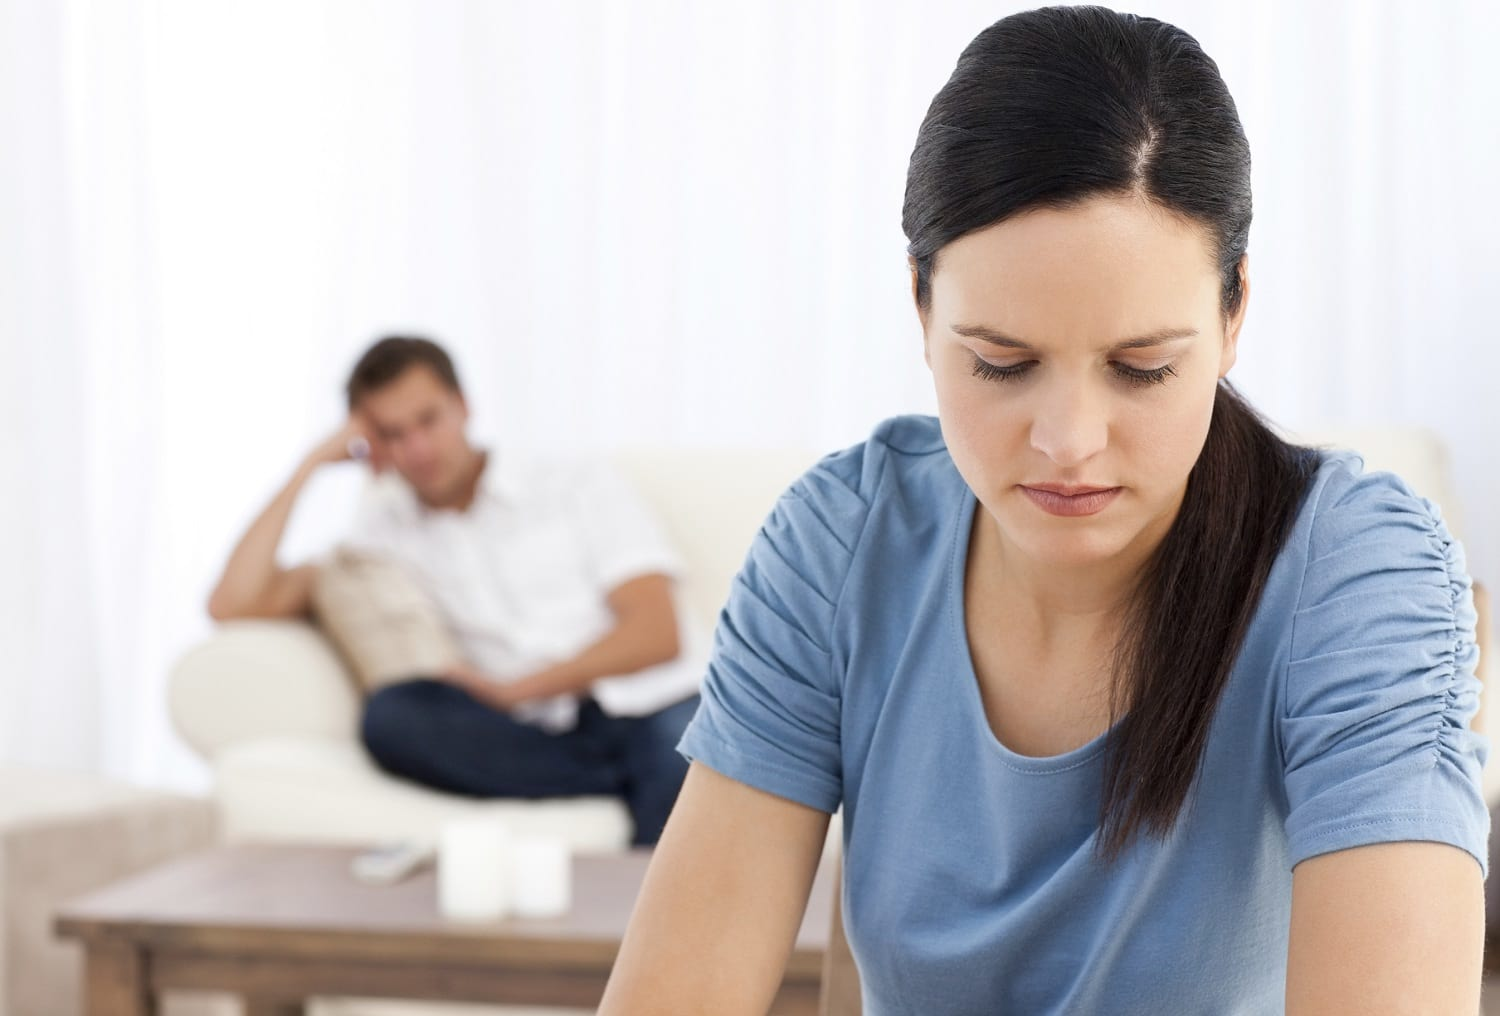 The Divorce Process: 17 Things You Need To Know - DS Family Law